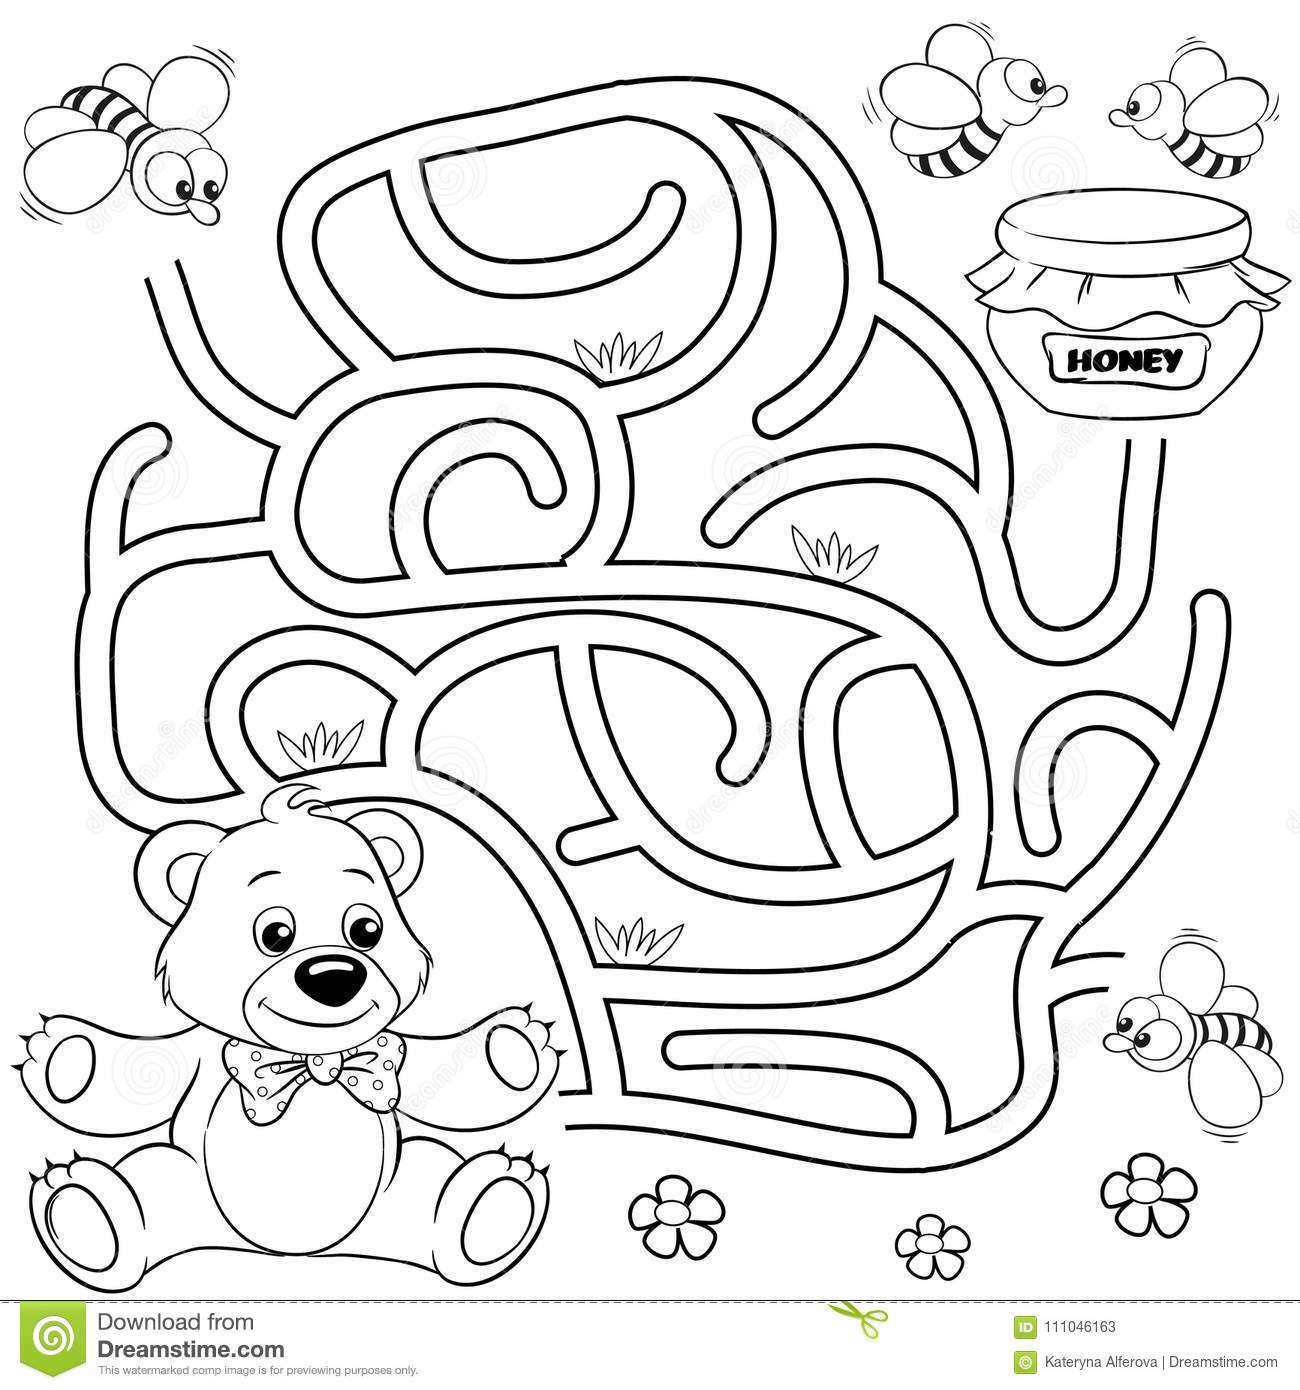 Help Bear Find Path To Honey Labyrinth Maze Game For